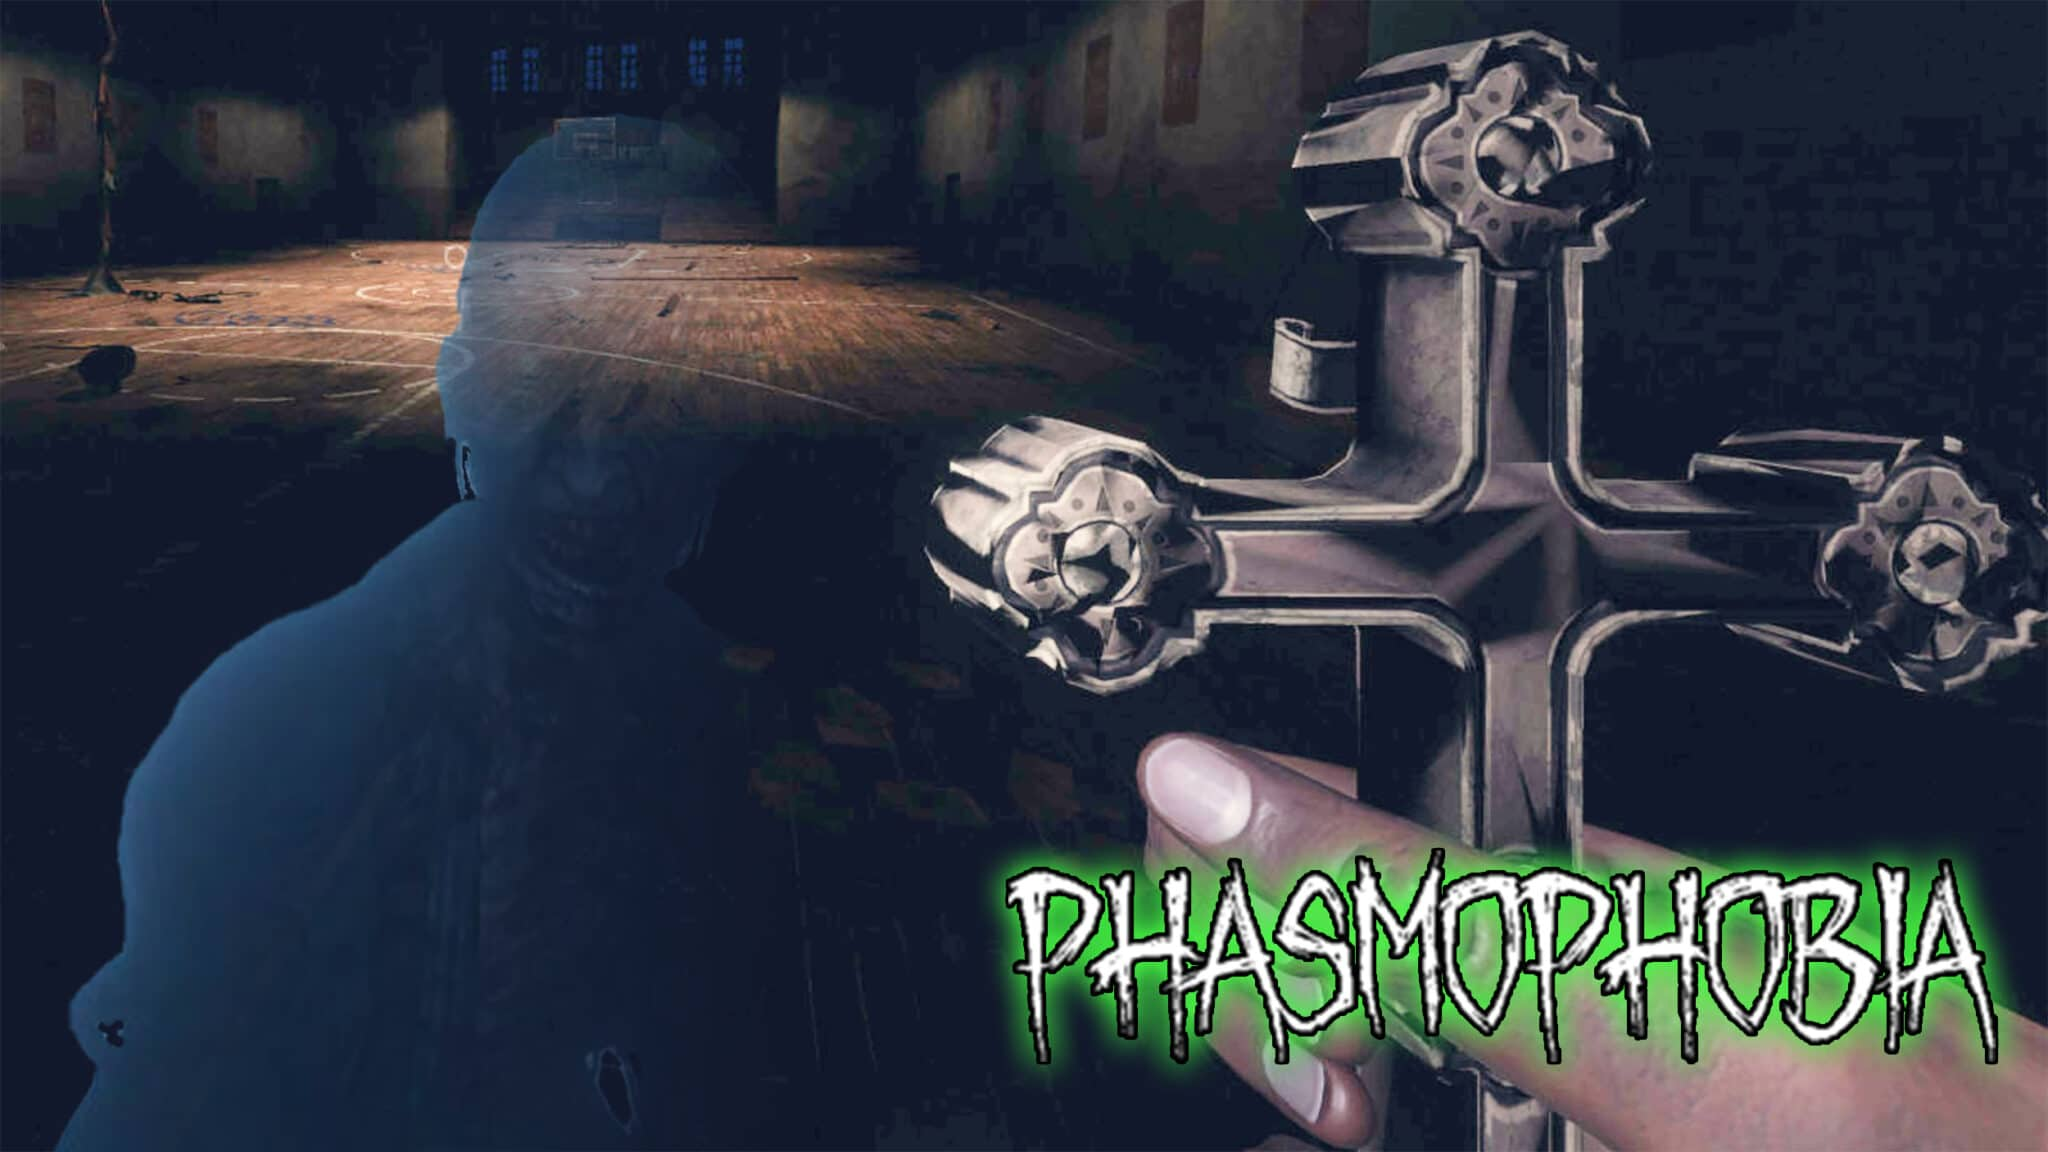 How to Use the Crucifix in Phasmophobia